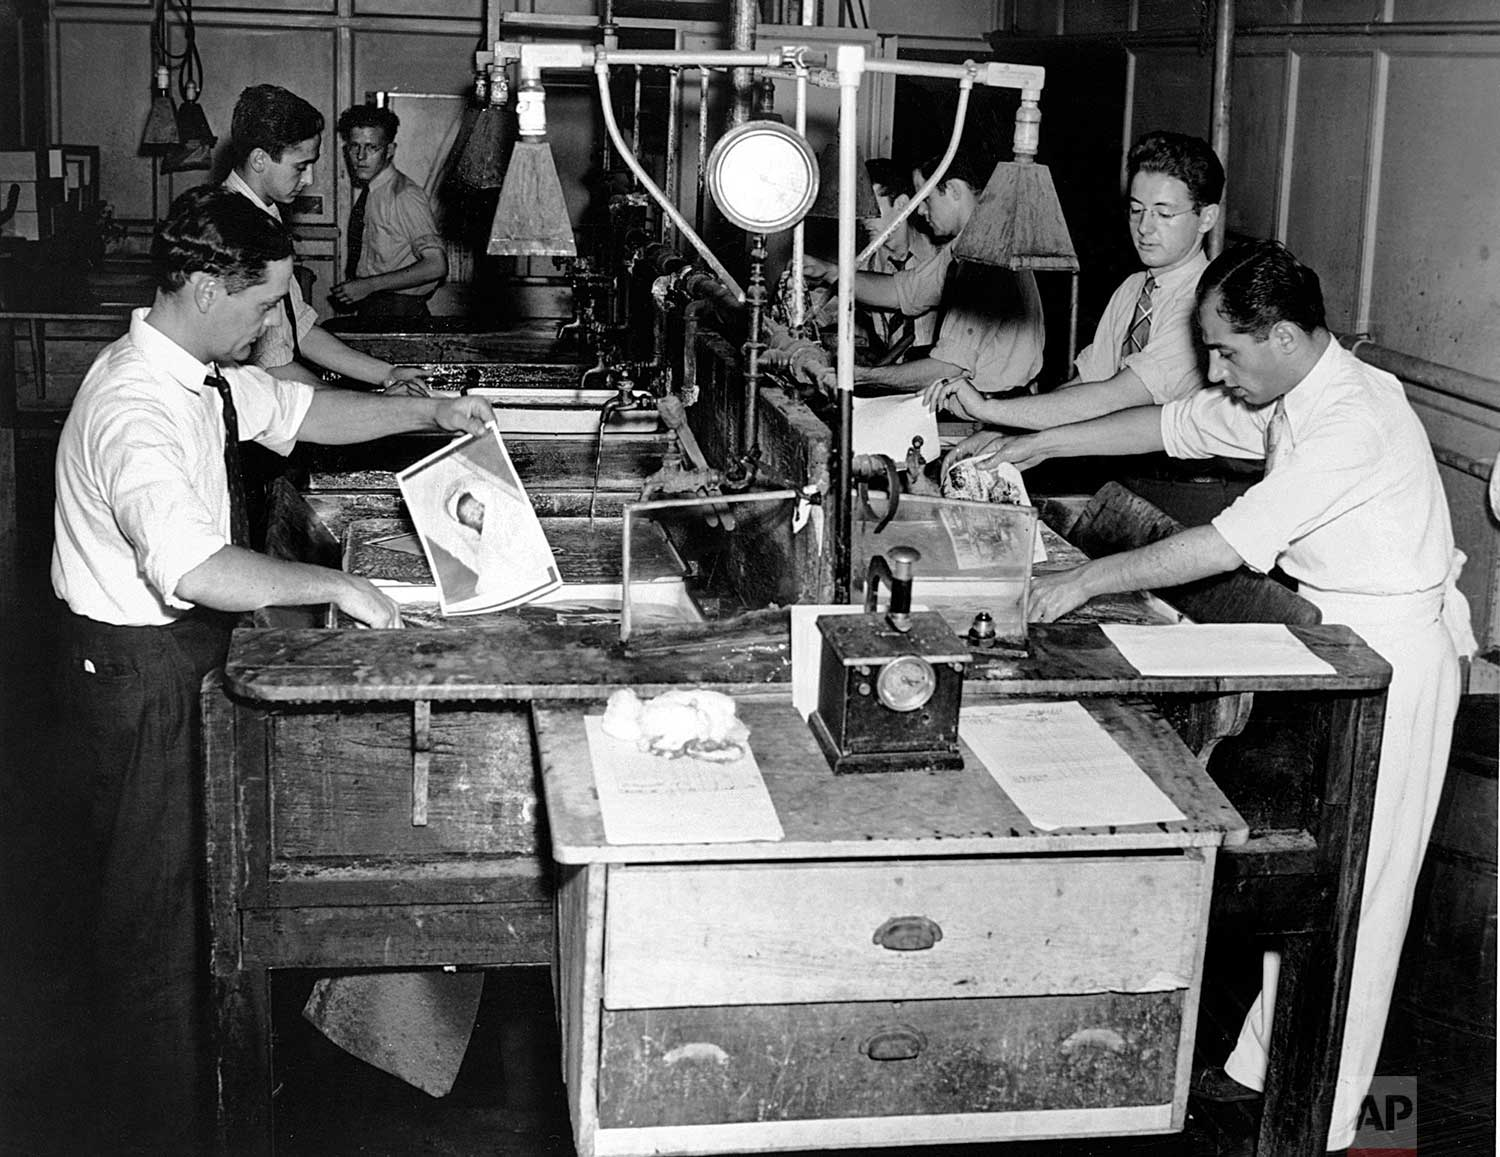 Marty Lederhandler, second from right, works in the darkroom of AP's New York headquarters on Madison Ave. ca. 1936. Lederhandler, who became an AP photographer, captured on film every U.S. president from Herbert Hoover to Bill Clinton, covered the D-Day landing in 1944 and climaxed a 66-year career with an iconic shot of the 9/ll World Trade Center attacks. (AP Photo/Corporate Archives)